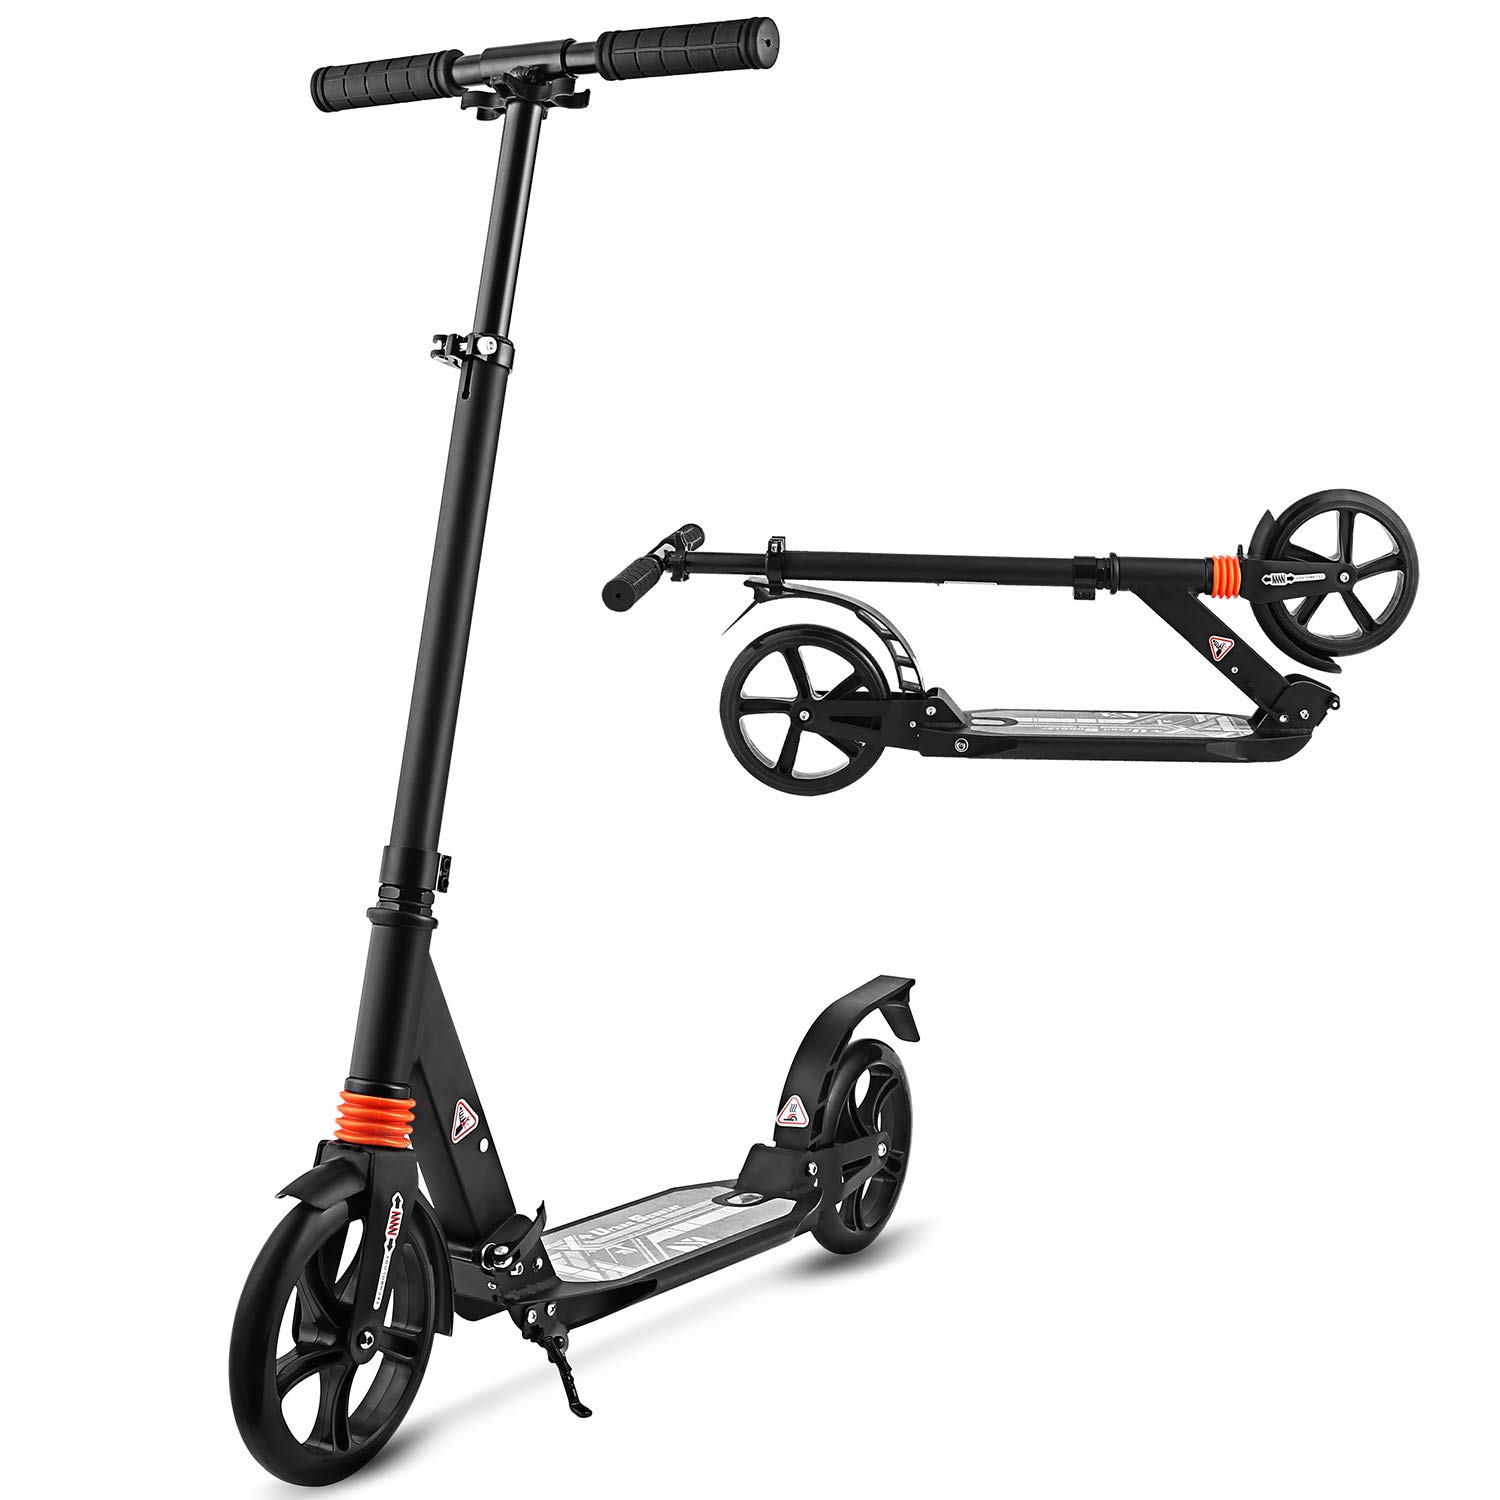 Hikole Scooter for Adults Teens   Adjustable Foldable + Dual Suspension + Shoulder Strap + 8 inches Big Wheels + Rear Fender Brake, Aluminium Alloy Commuter Scooter for Kids Age 12 Up, Ride Smooth by Hikole